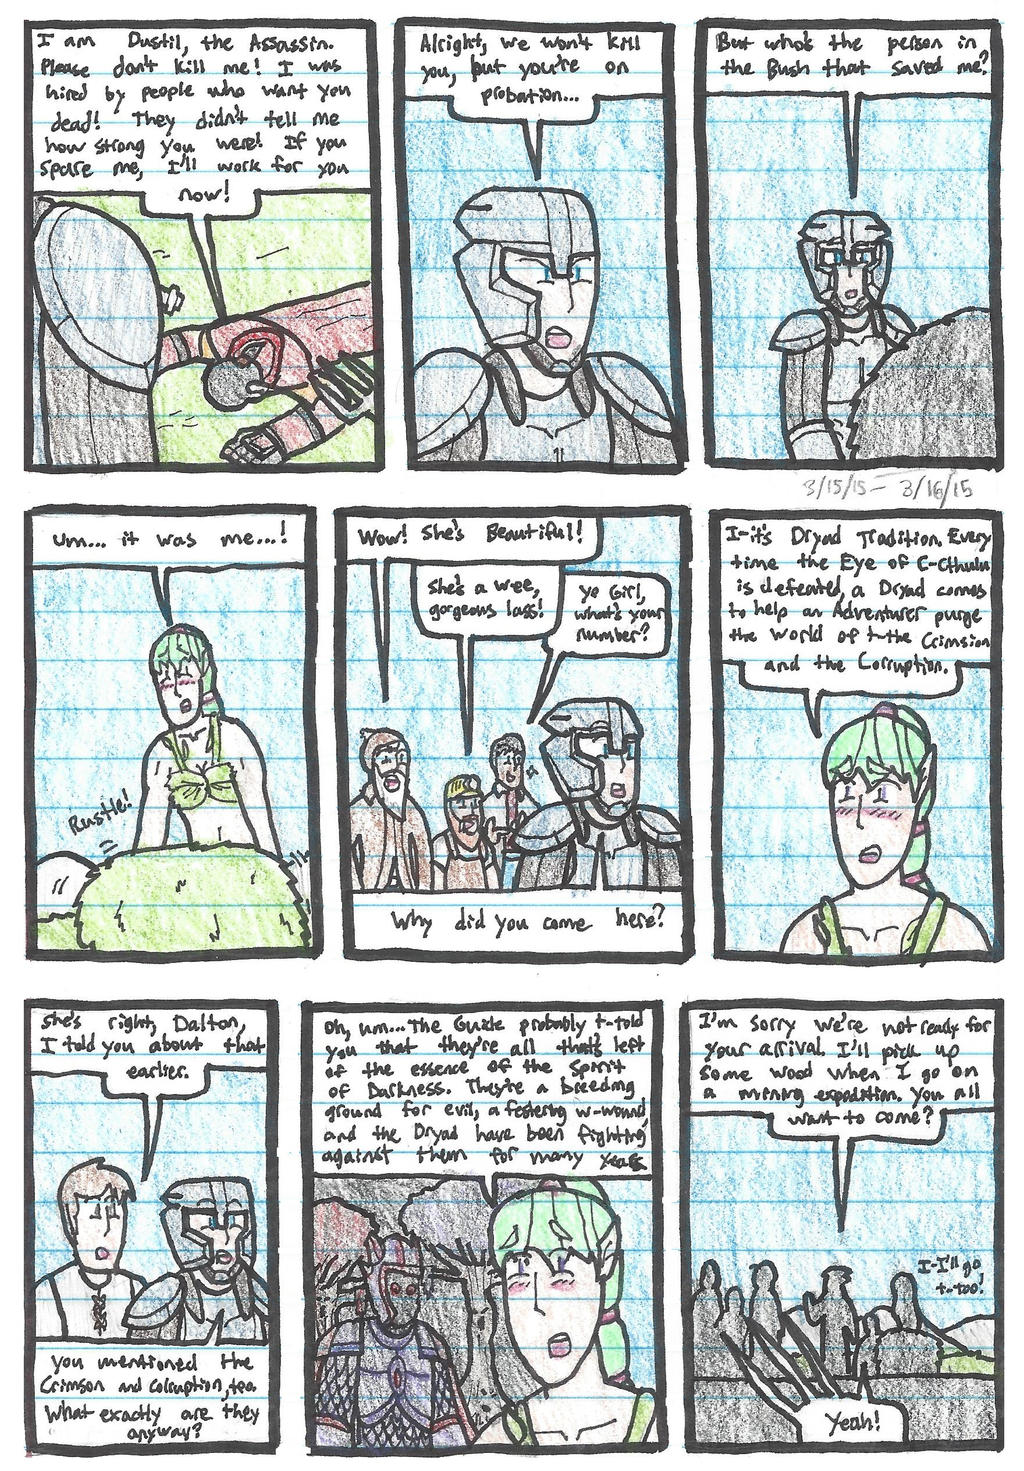 terraria__the_comic__page_36_by_dwestmoo